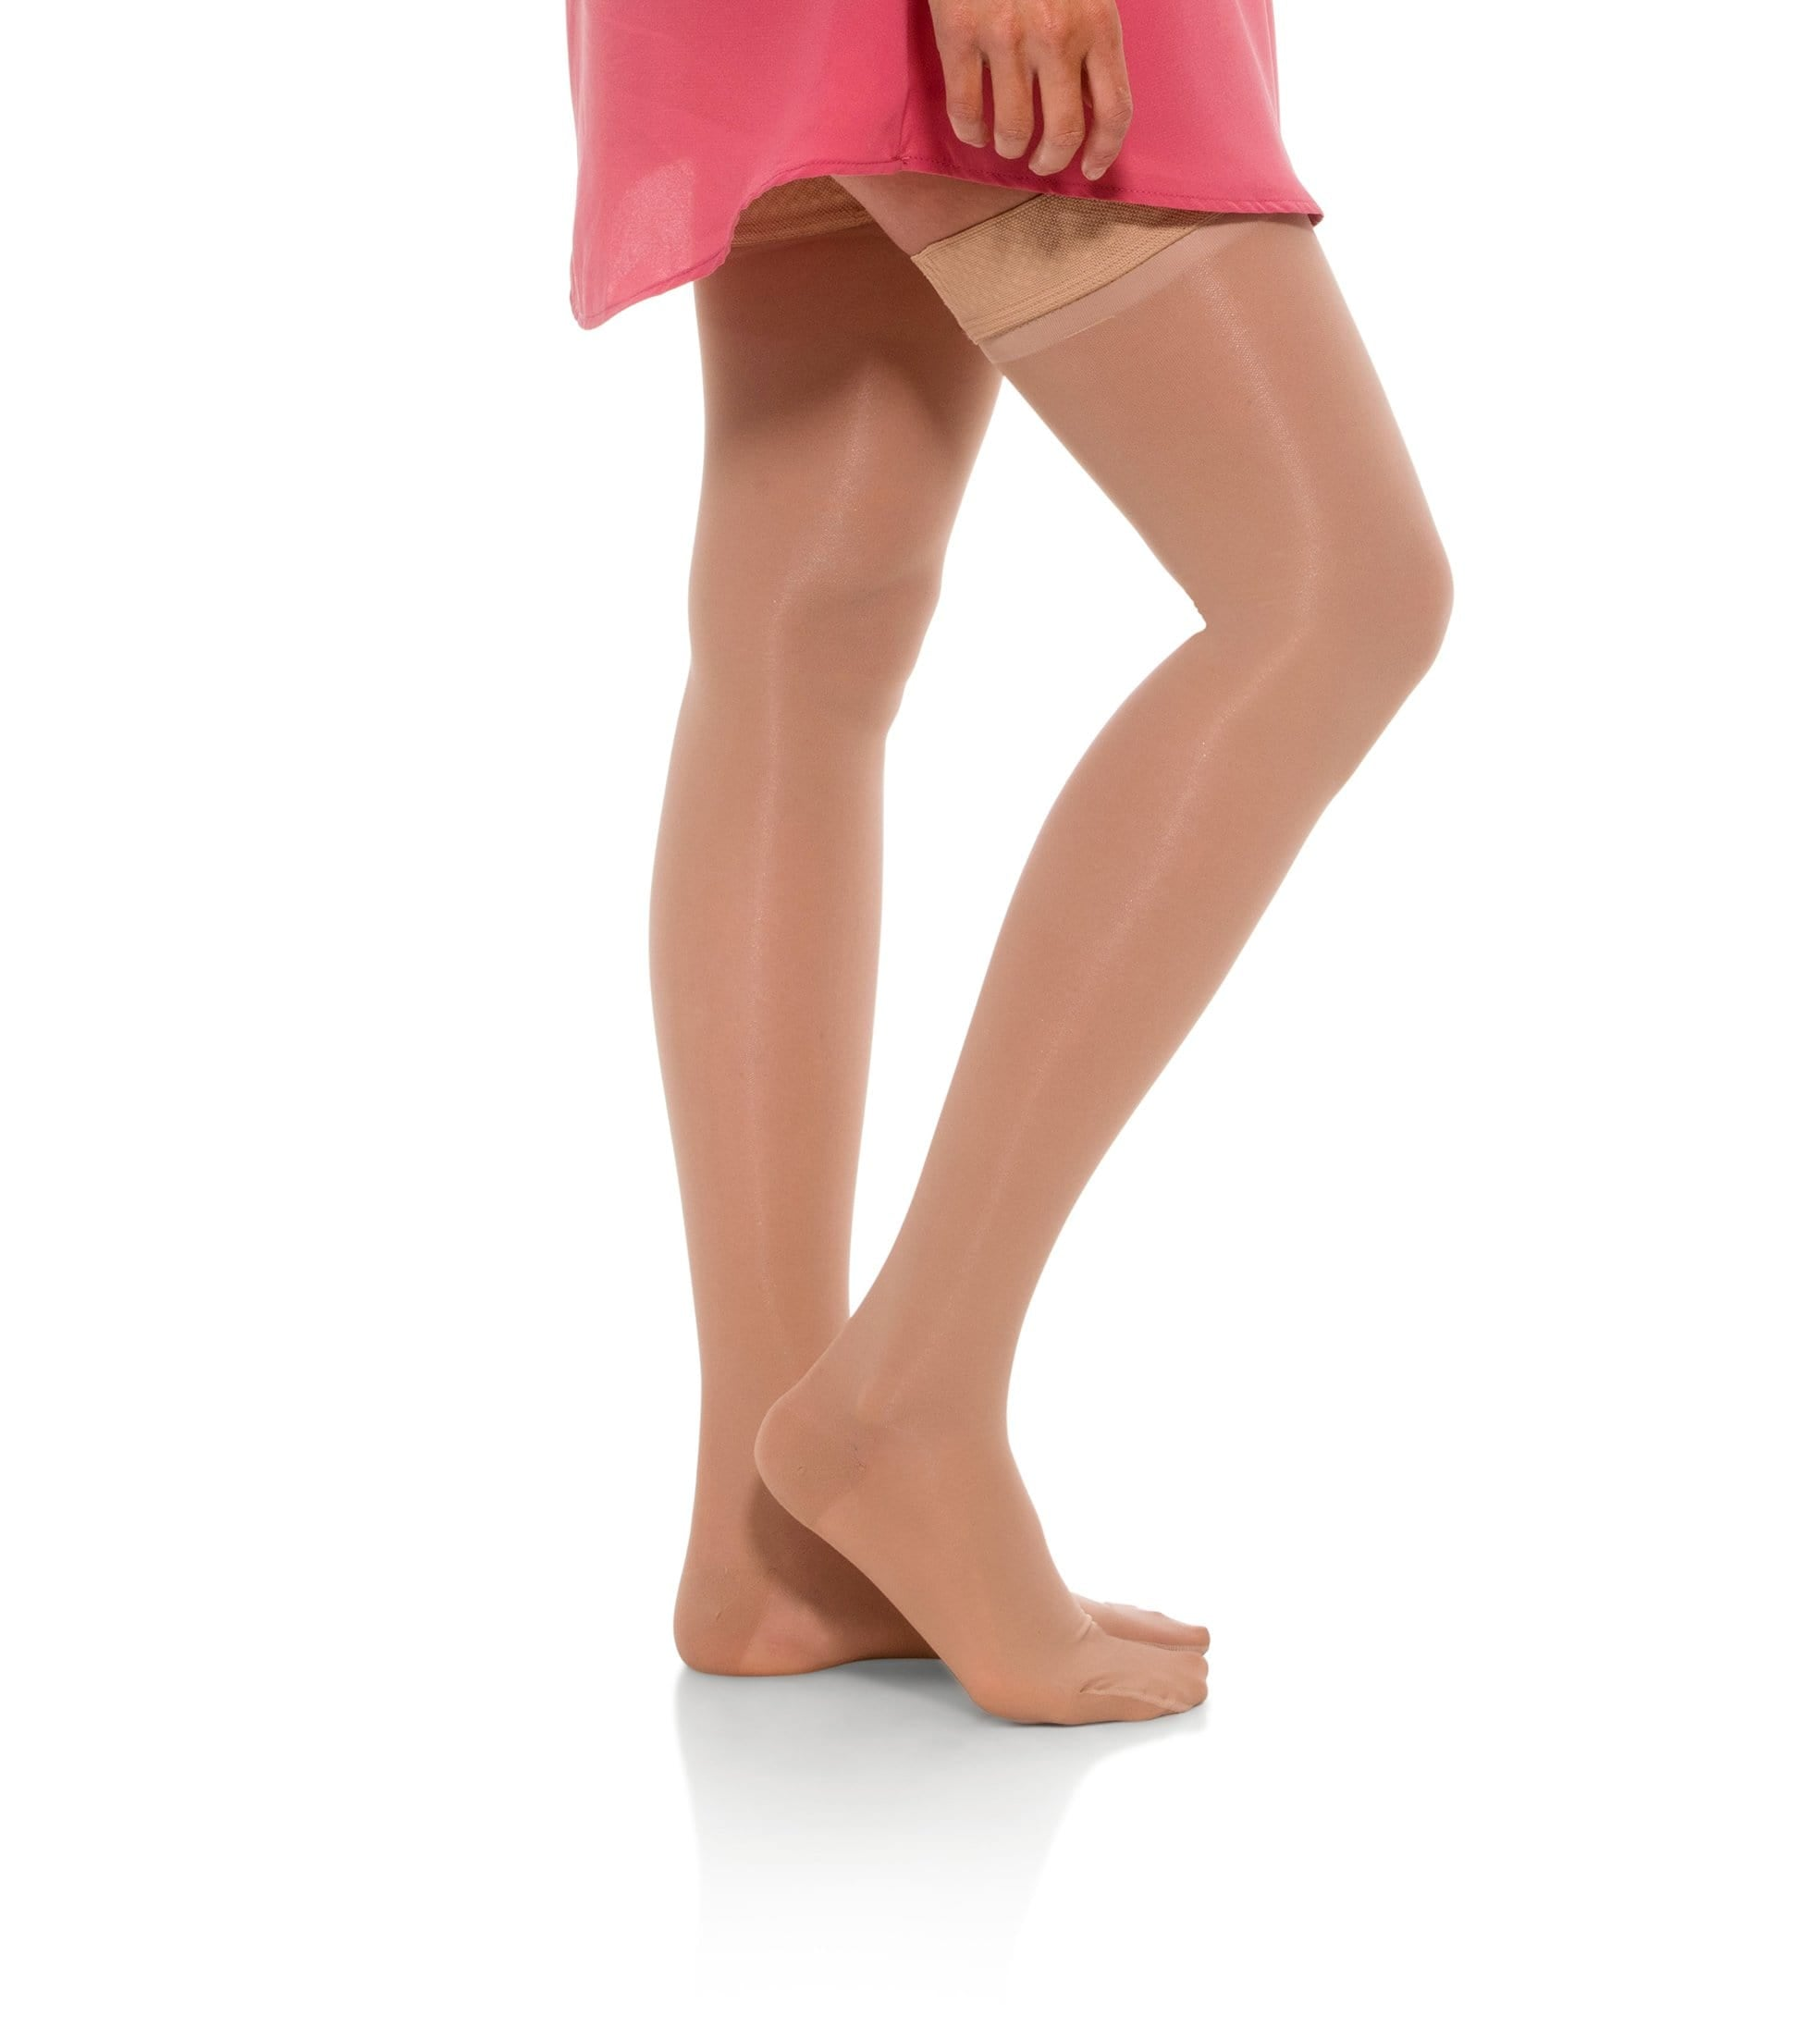 Thigh High Compression Stockings, 20-30mmHg Sheer Closed Toe 245